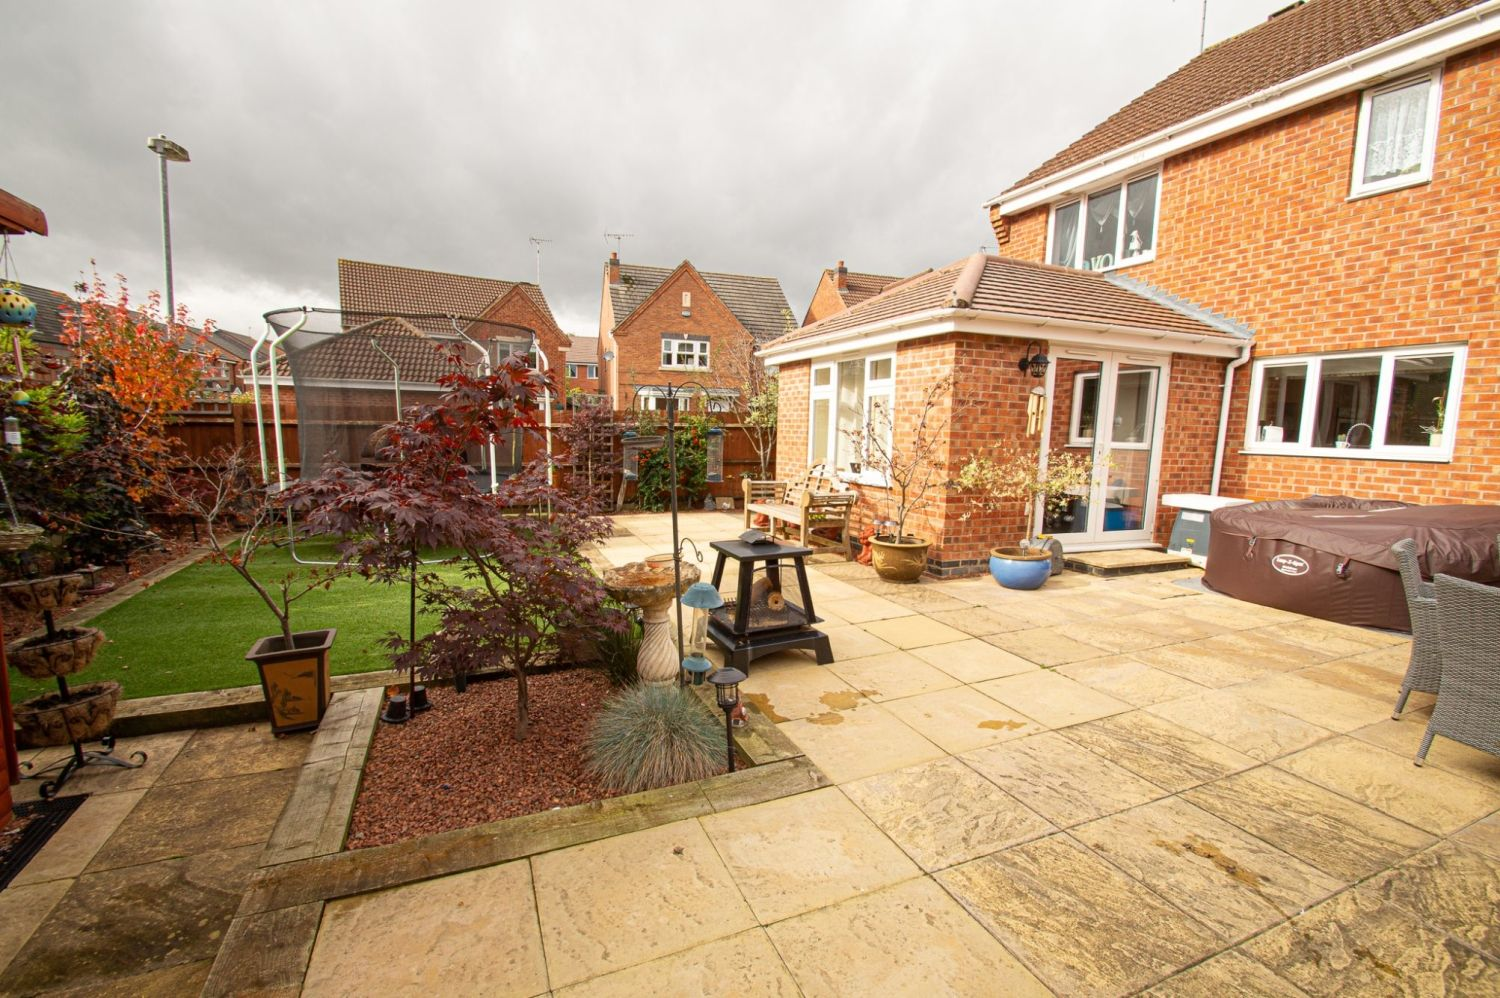 4 bed detached for sale in Harris Close, Greenlands  - Property Image 14